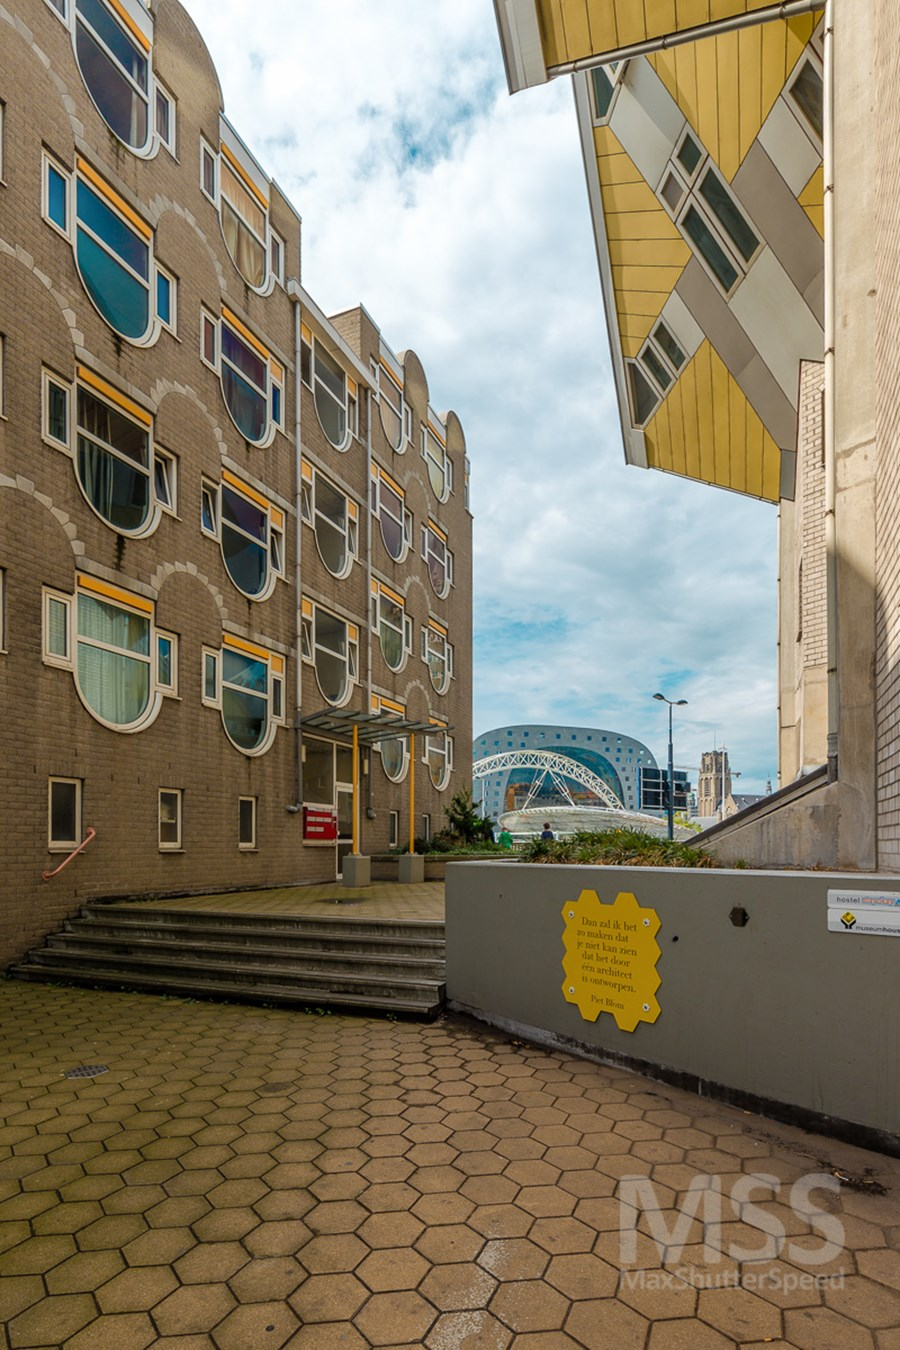 Cube houses in Rotterdam by MaxShutterSpeed 15